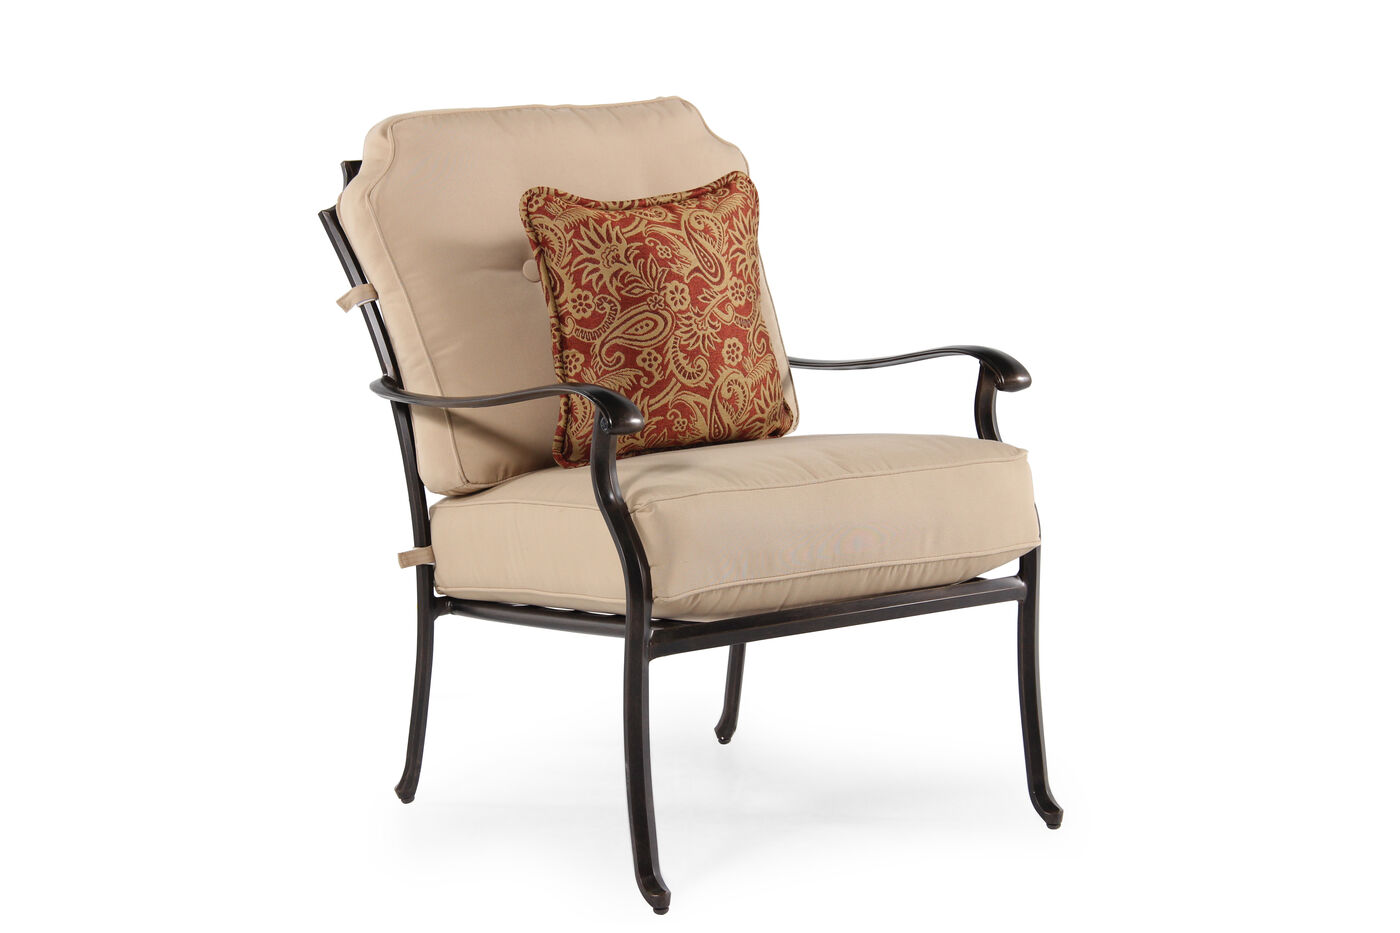 Agio heritage patio furniture 28 images agio heritage for Agio chaise lounge costco